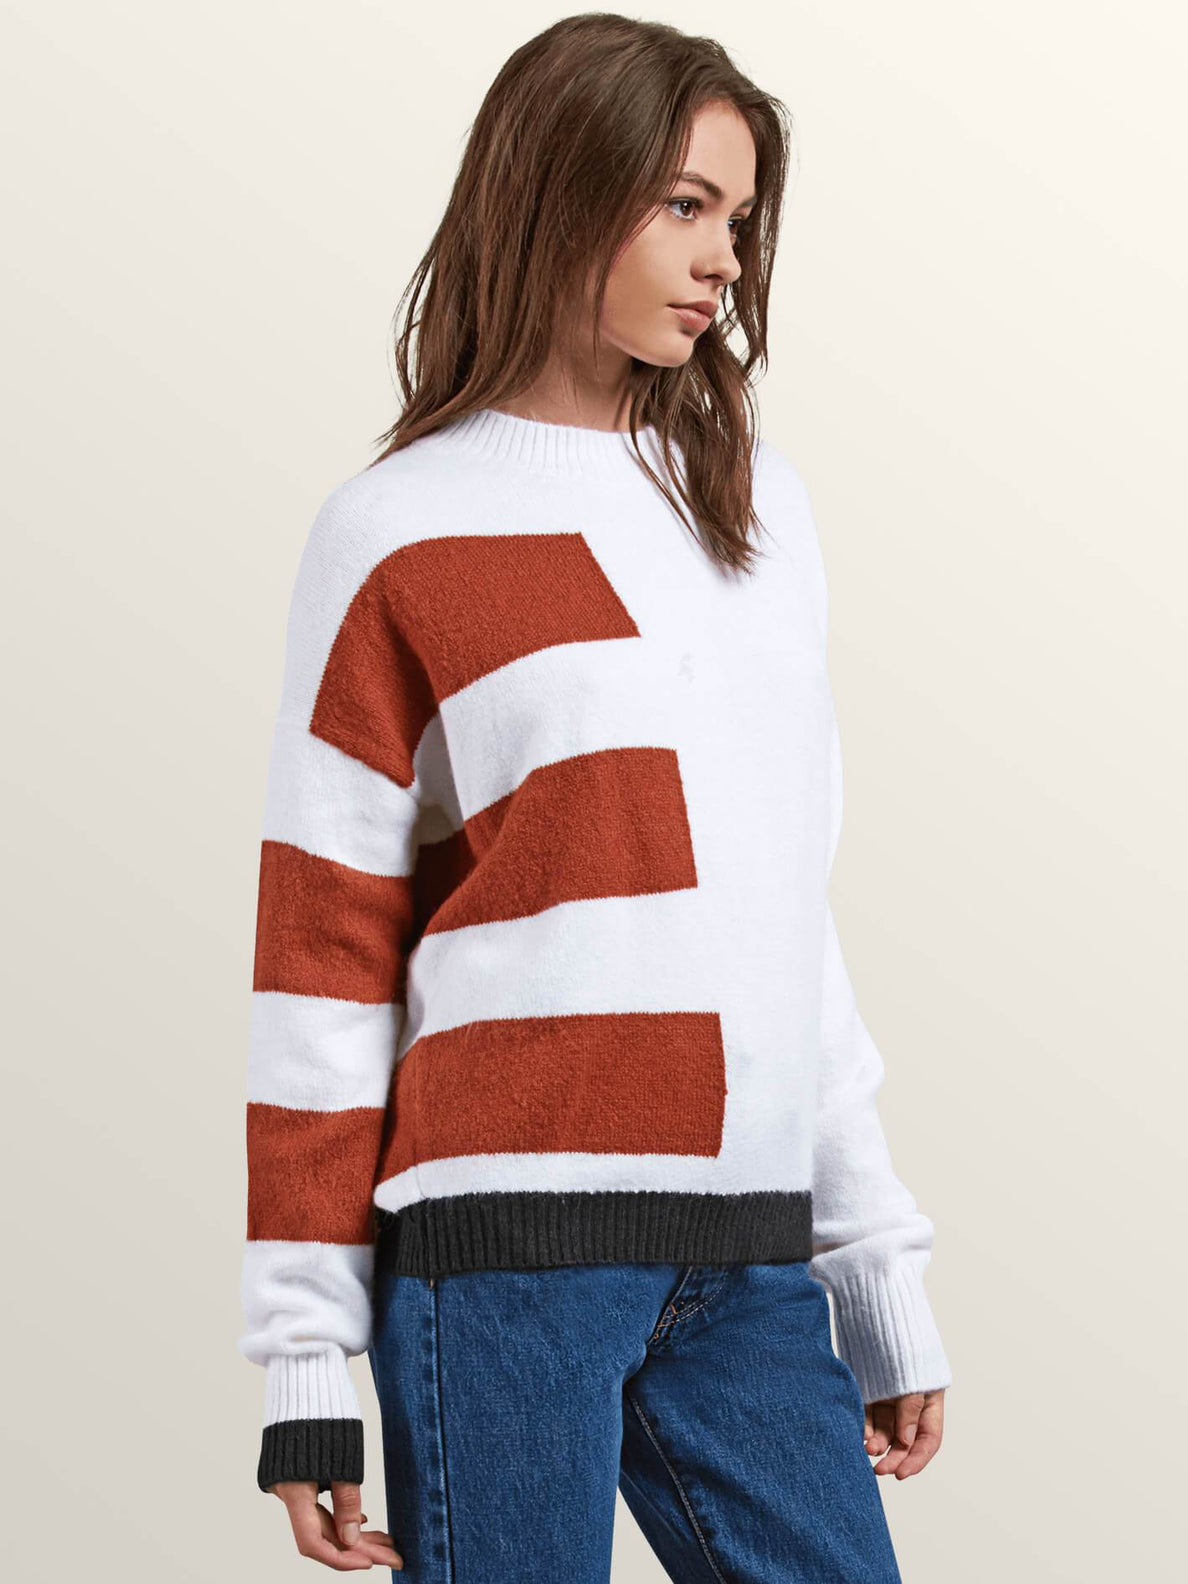 Cold Band Sweater In White, Alternate View